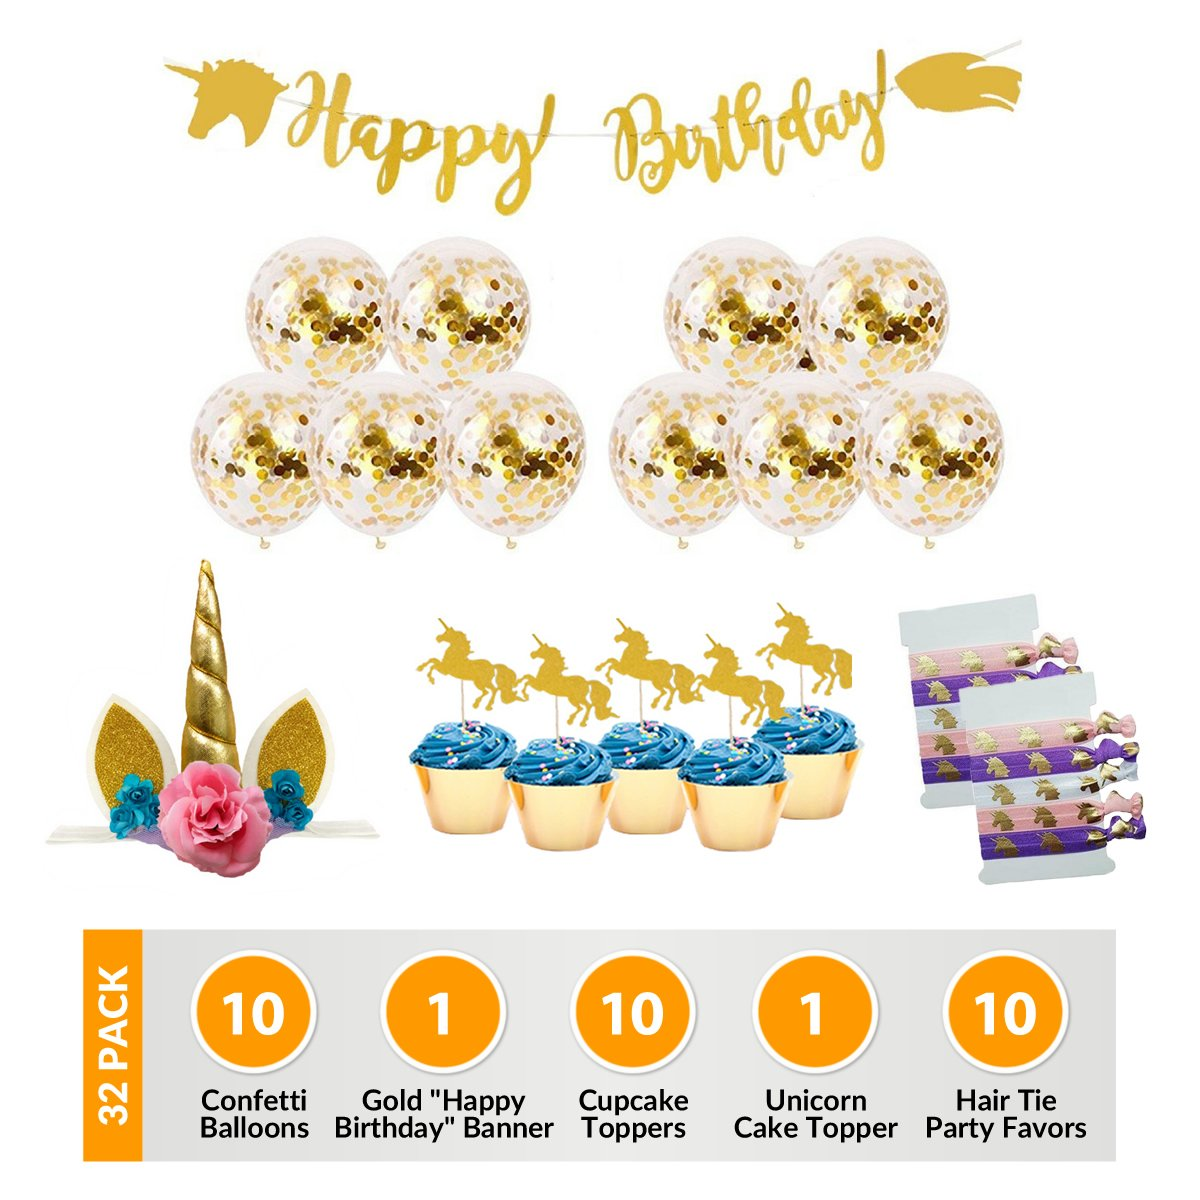 Unicorn Birthday Party Supplies Decorations: 32 Pack With Quality Gold Confetti Balloons, Cake Decoration, Cupcake Toppers, Banner and Magical Enchanted Hair Ties Favors For Girls, Boys, Pink, Gold by Aries Supply